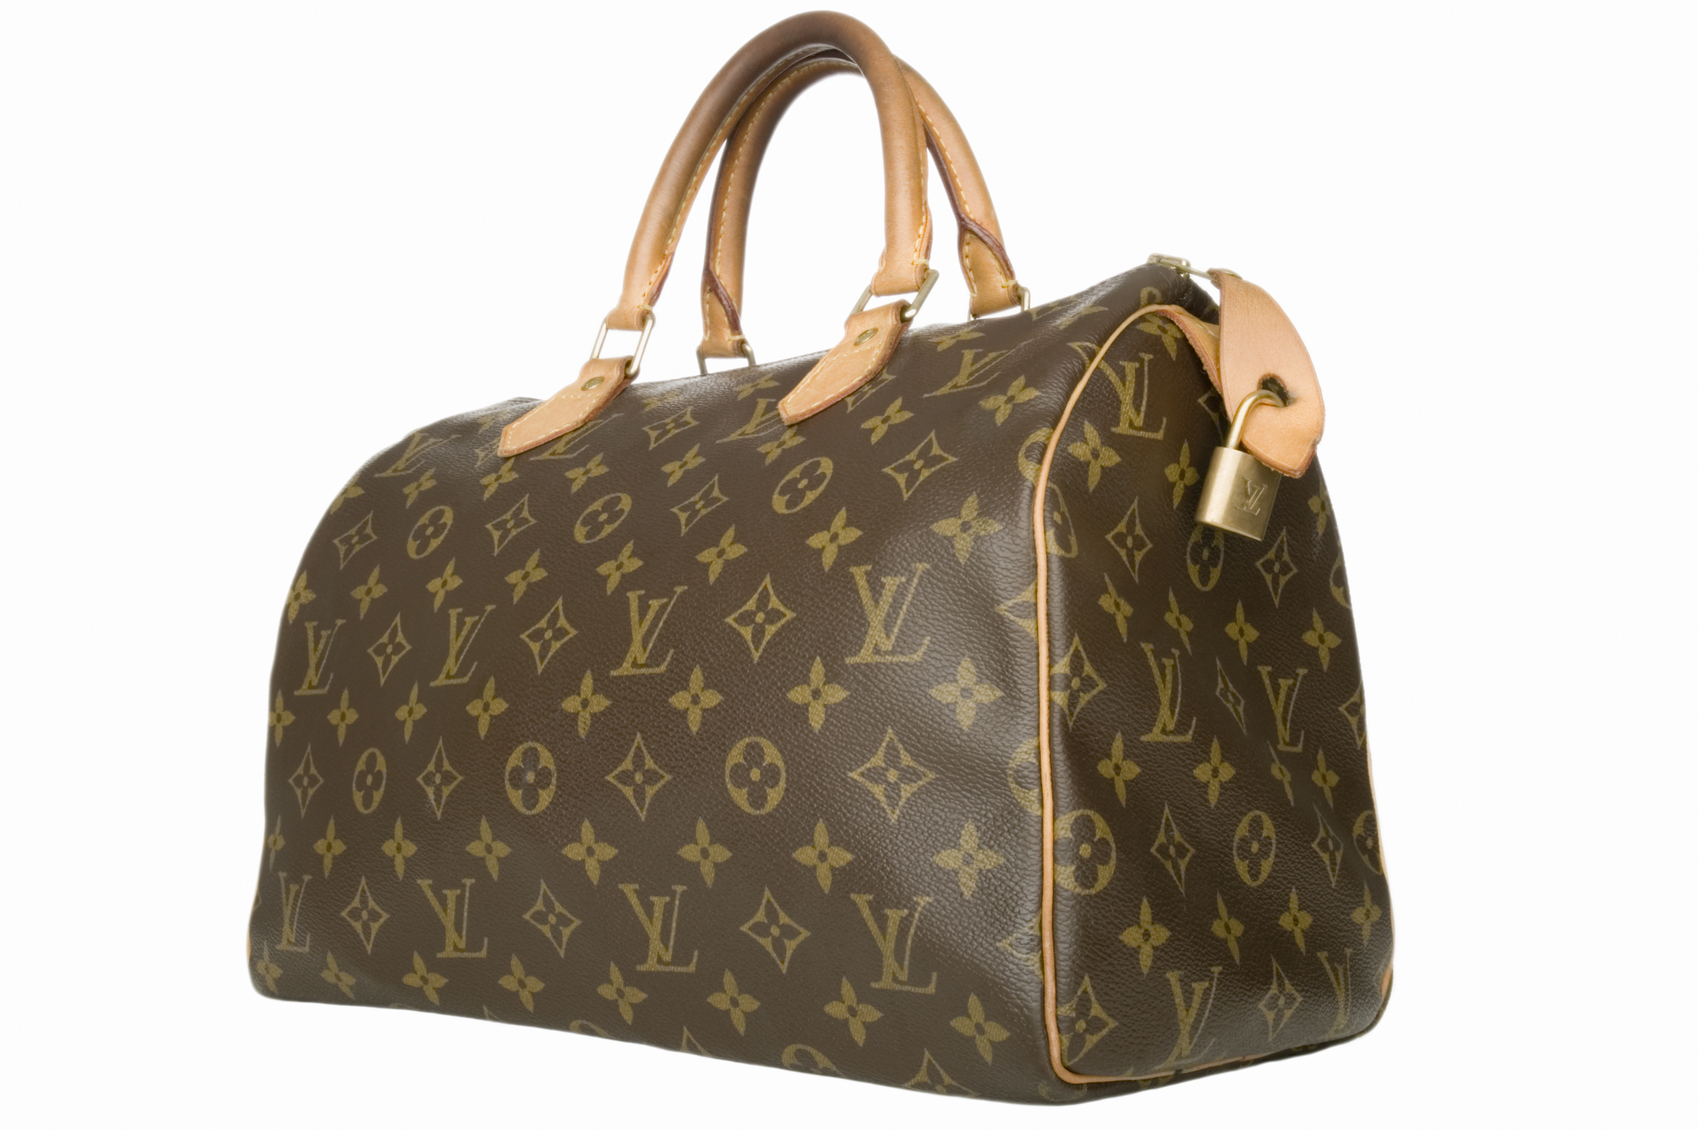 5bc5c5e45052d How to Spot a Fake Louis Vuitton Bag